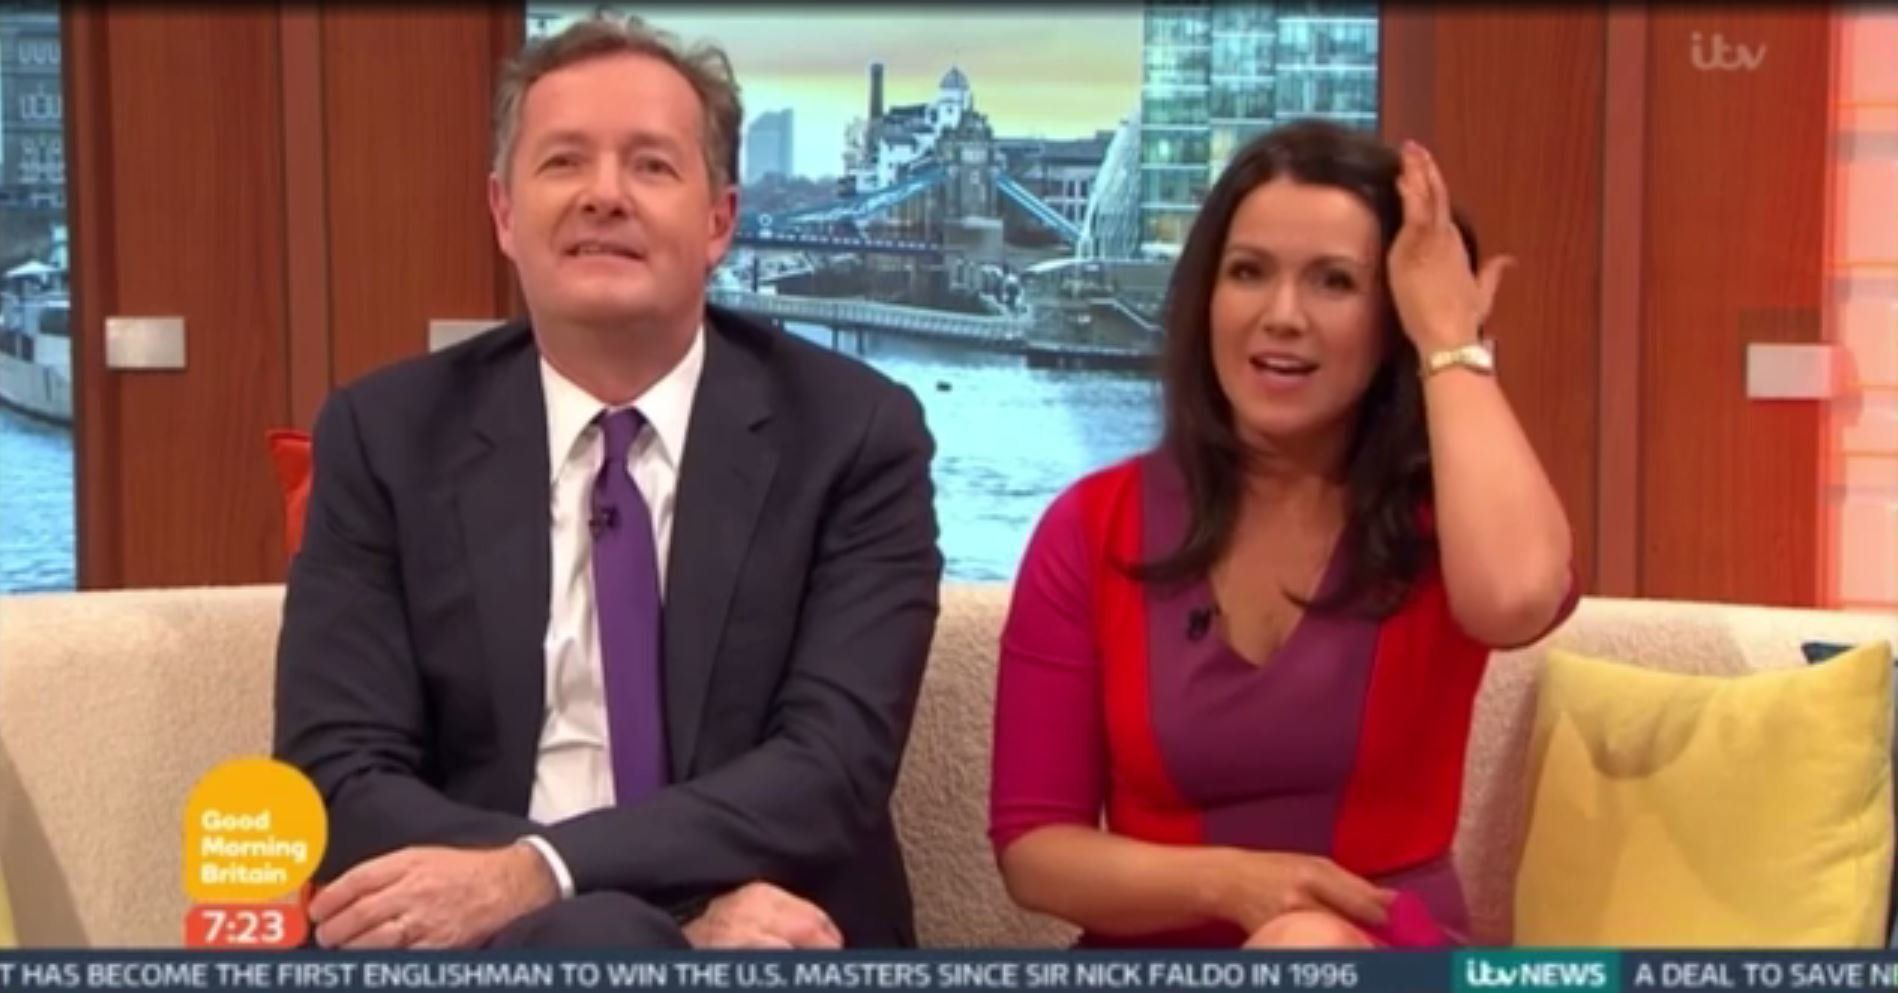 Piers Morgan and Susanna Reid were joined by some unexpected guests on 'Good Morning